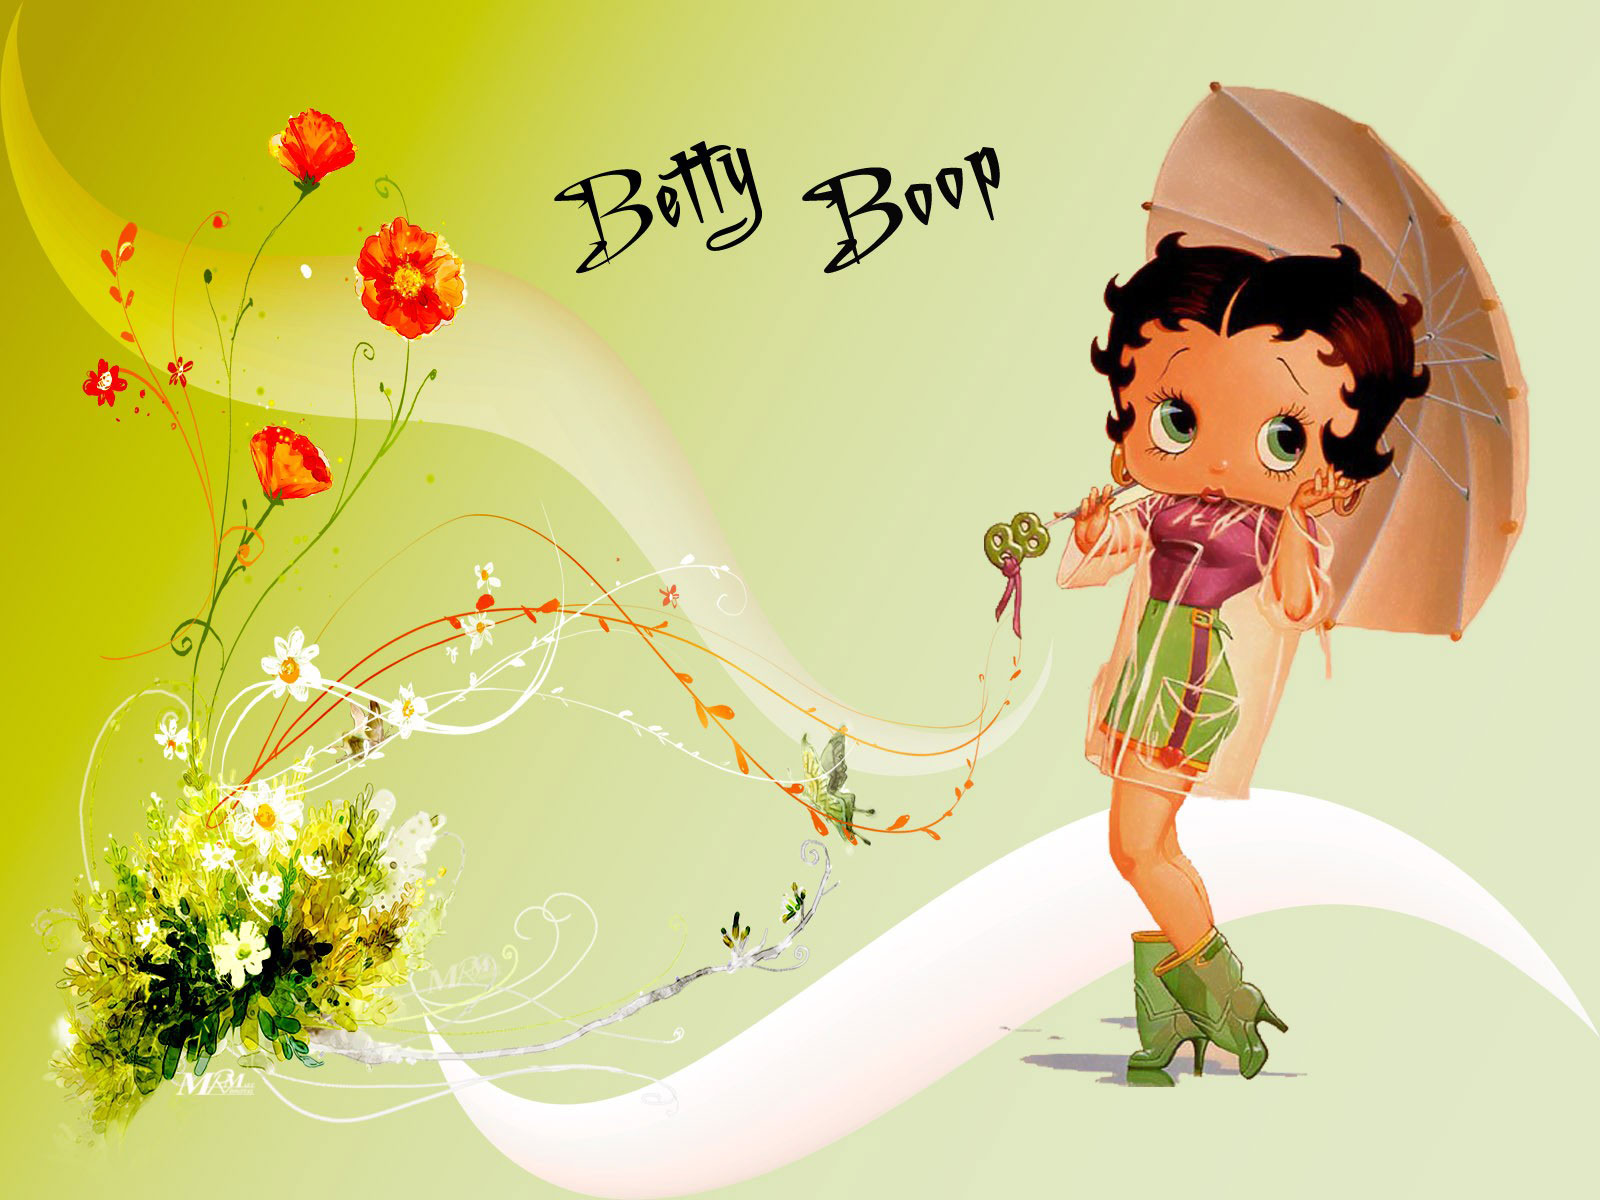 betty boop Wallpaper and Background Image | 1600x1200 | ID:475128